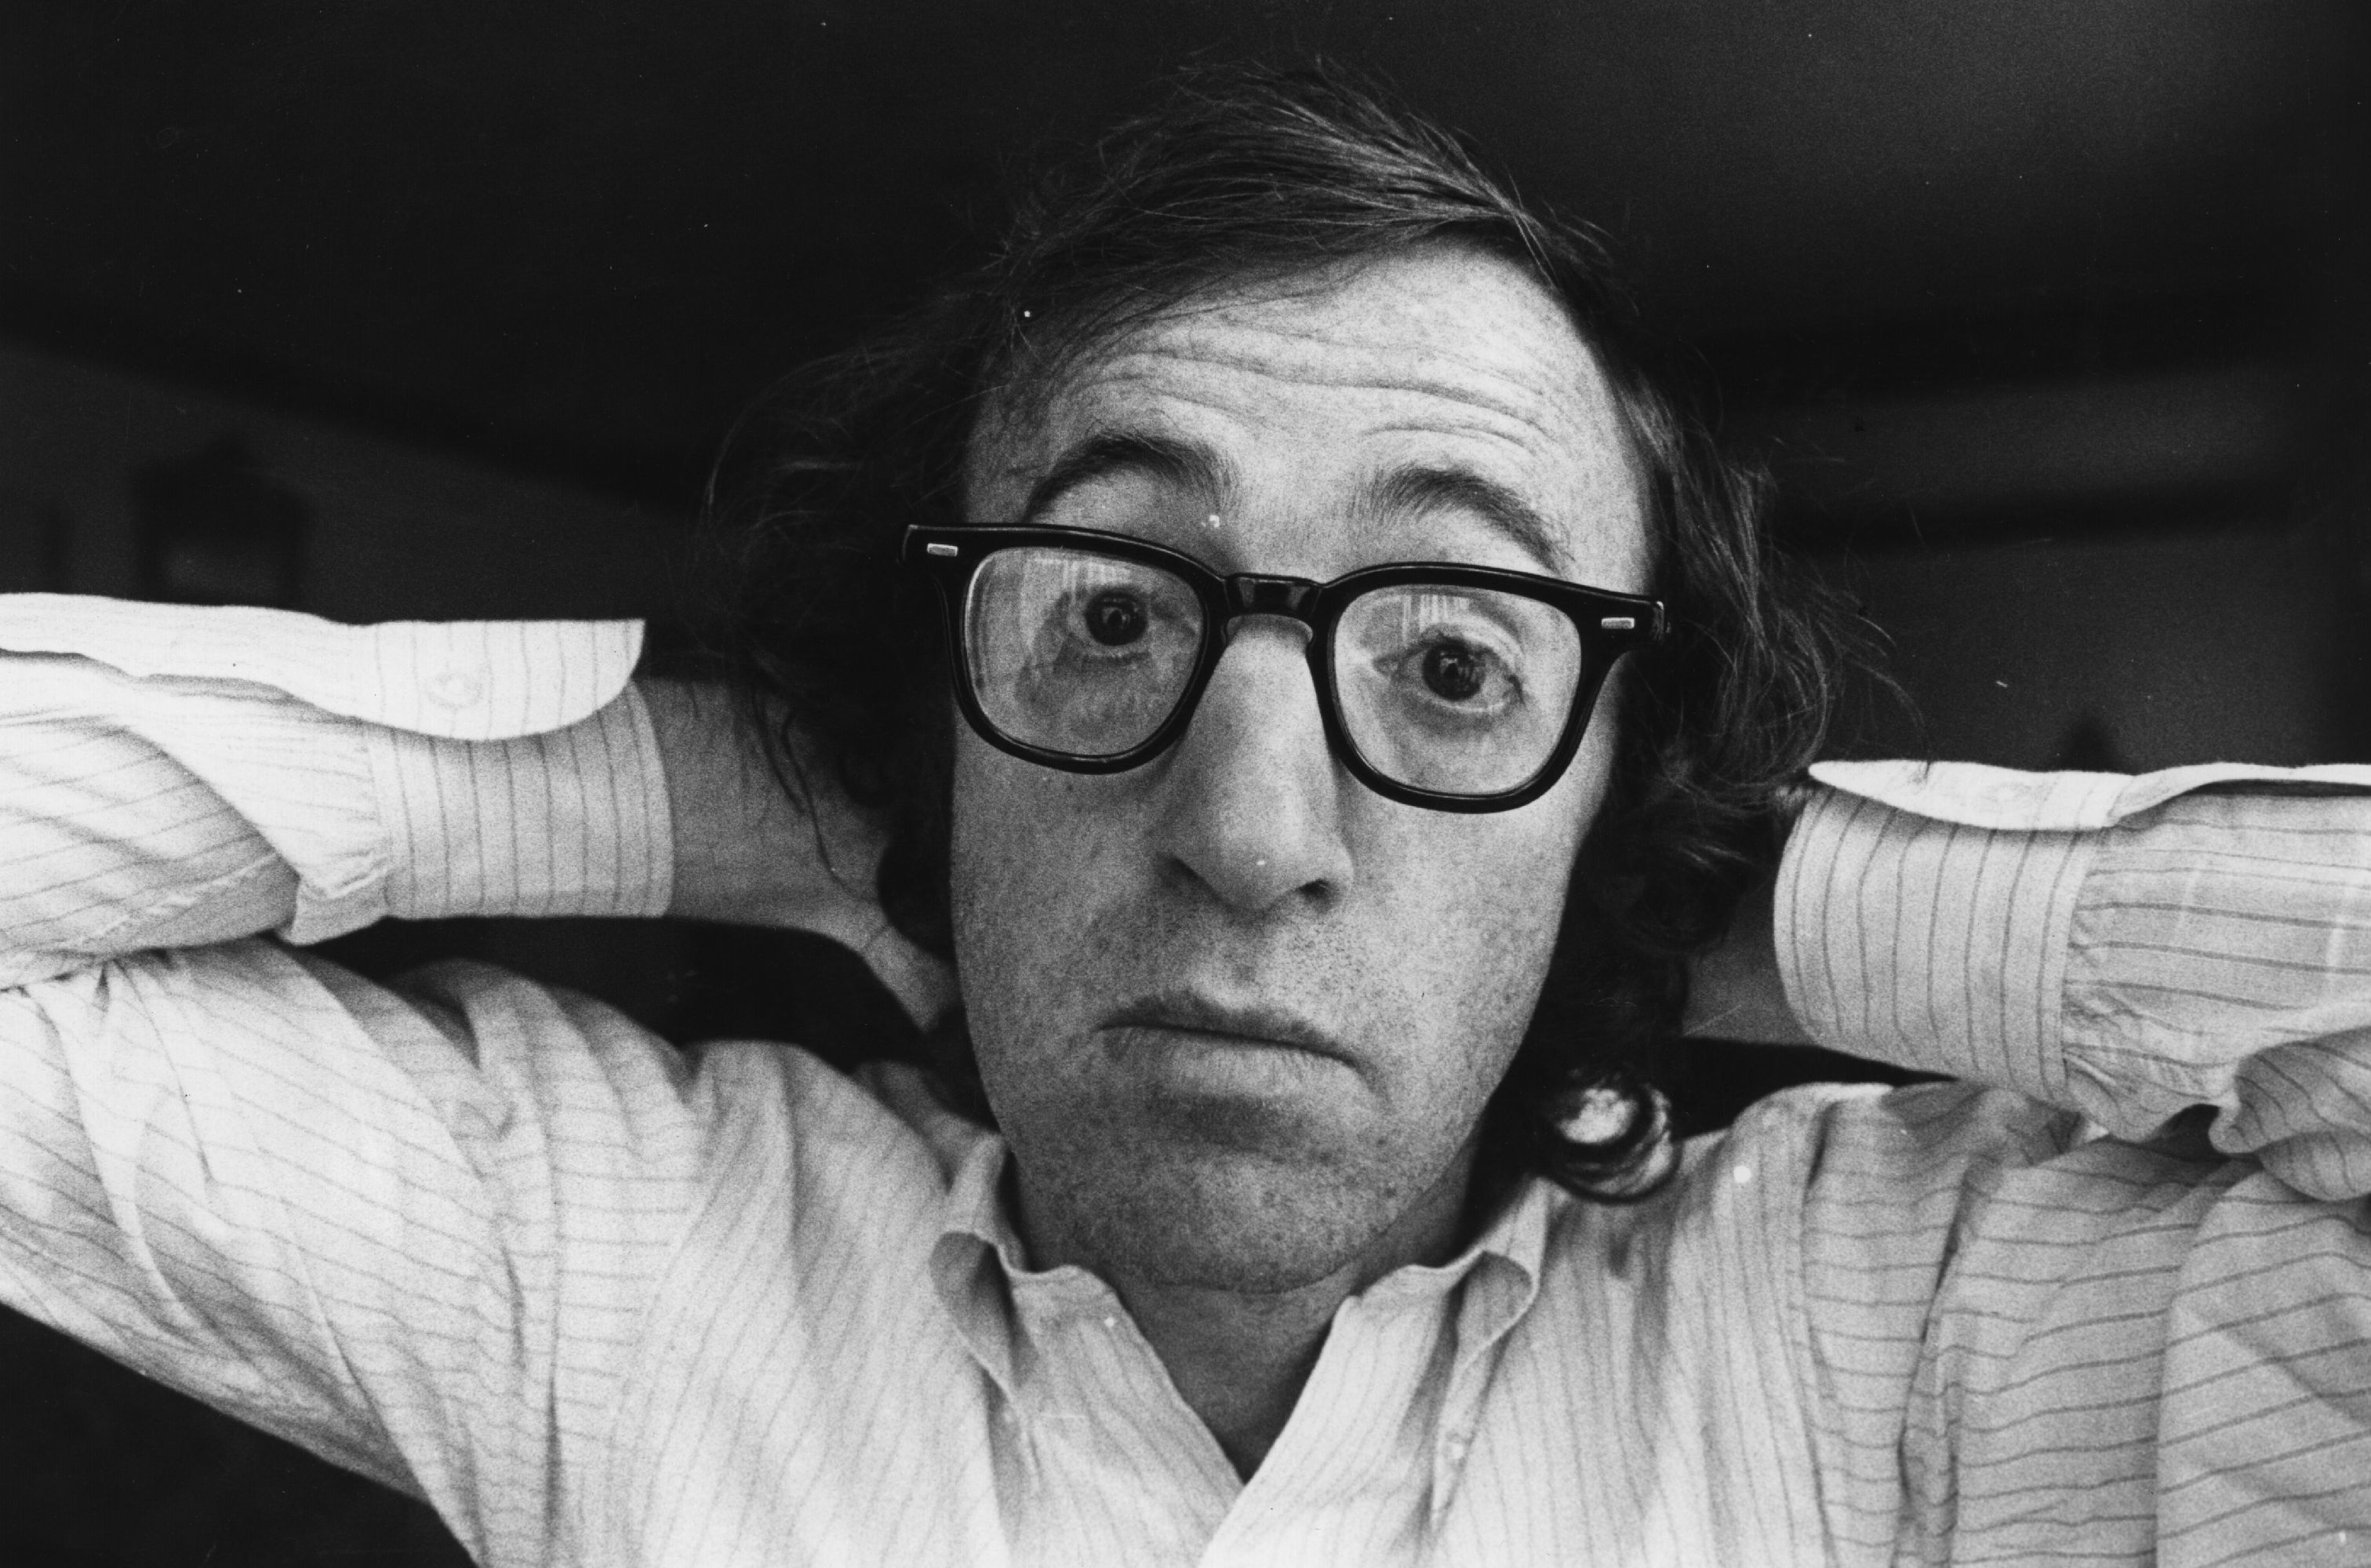 American writer, actor and film director Woody Allen. (Photo by Evening Standard/Getty Images)